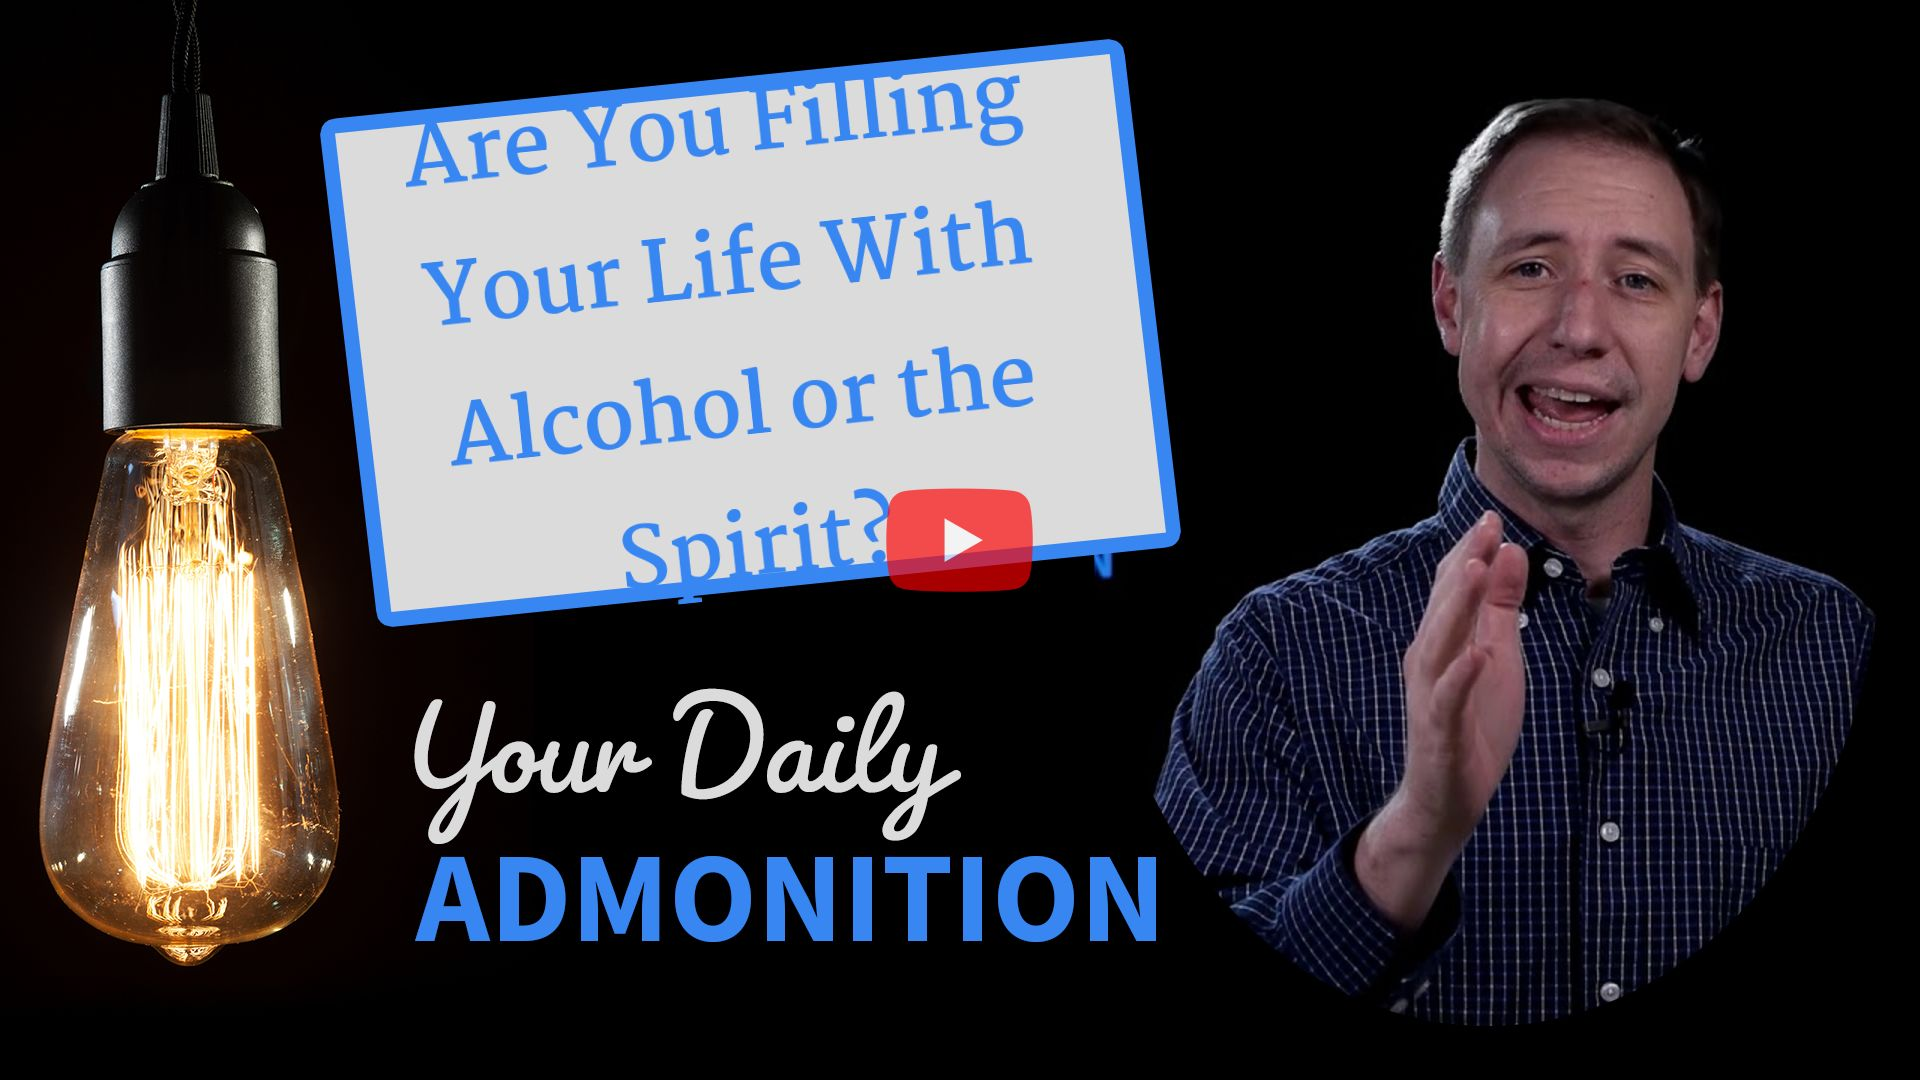 Are You Filling Your Life With Alcohol or the Spirit? – Admonition 325